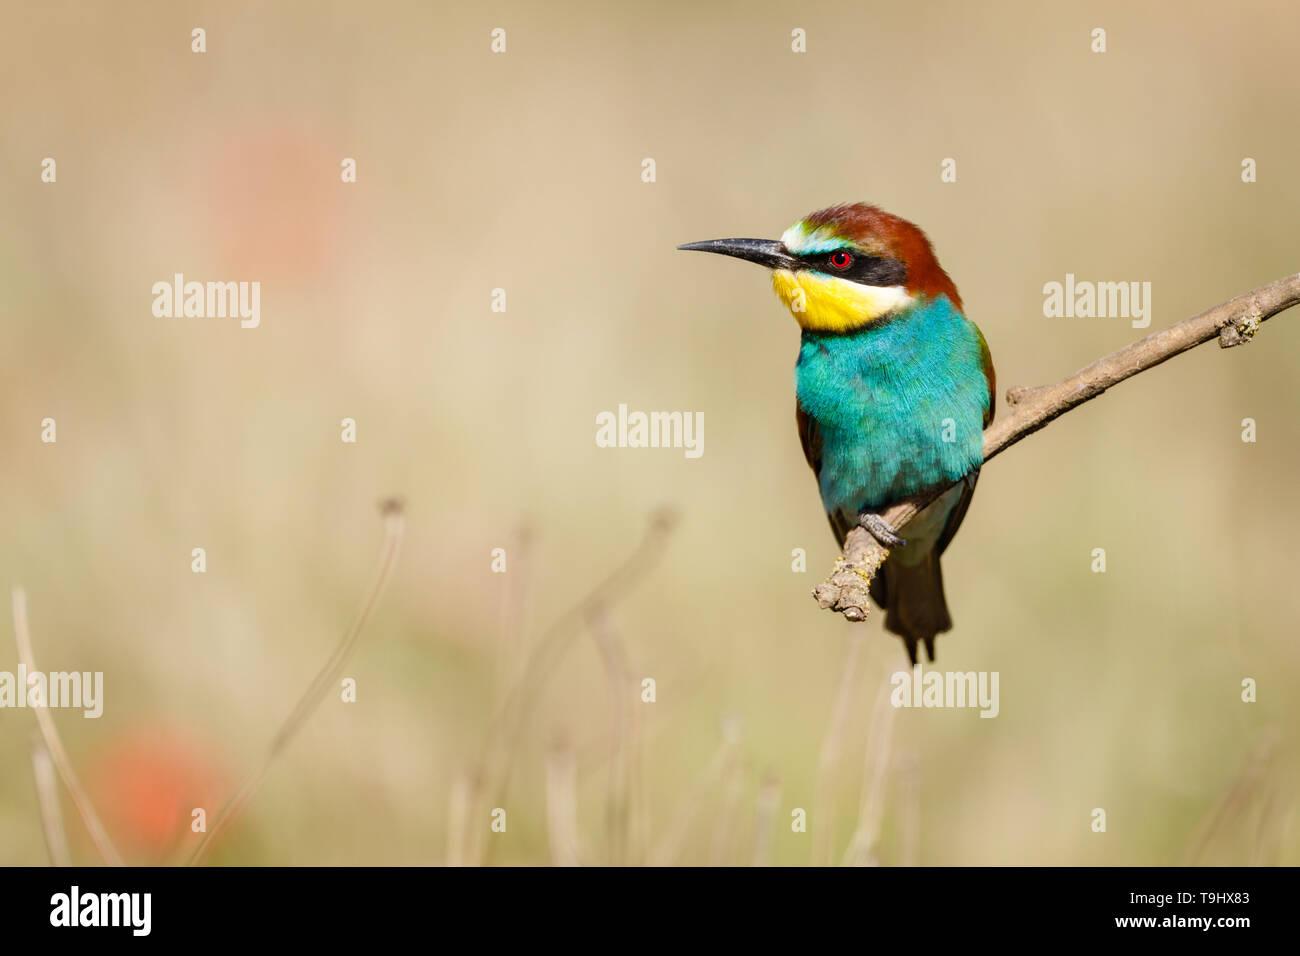 European Bee-eater (Merops apiaster), adult perched on branch, Lleida Steppes, Catalonia, Spain Stock Photo